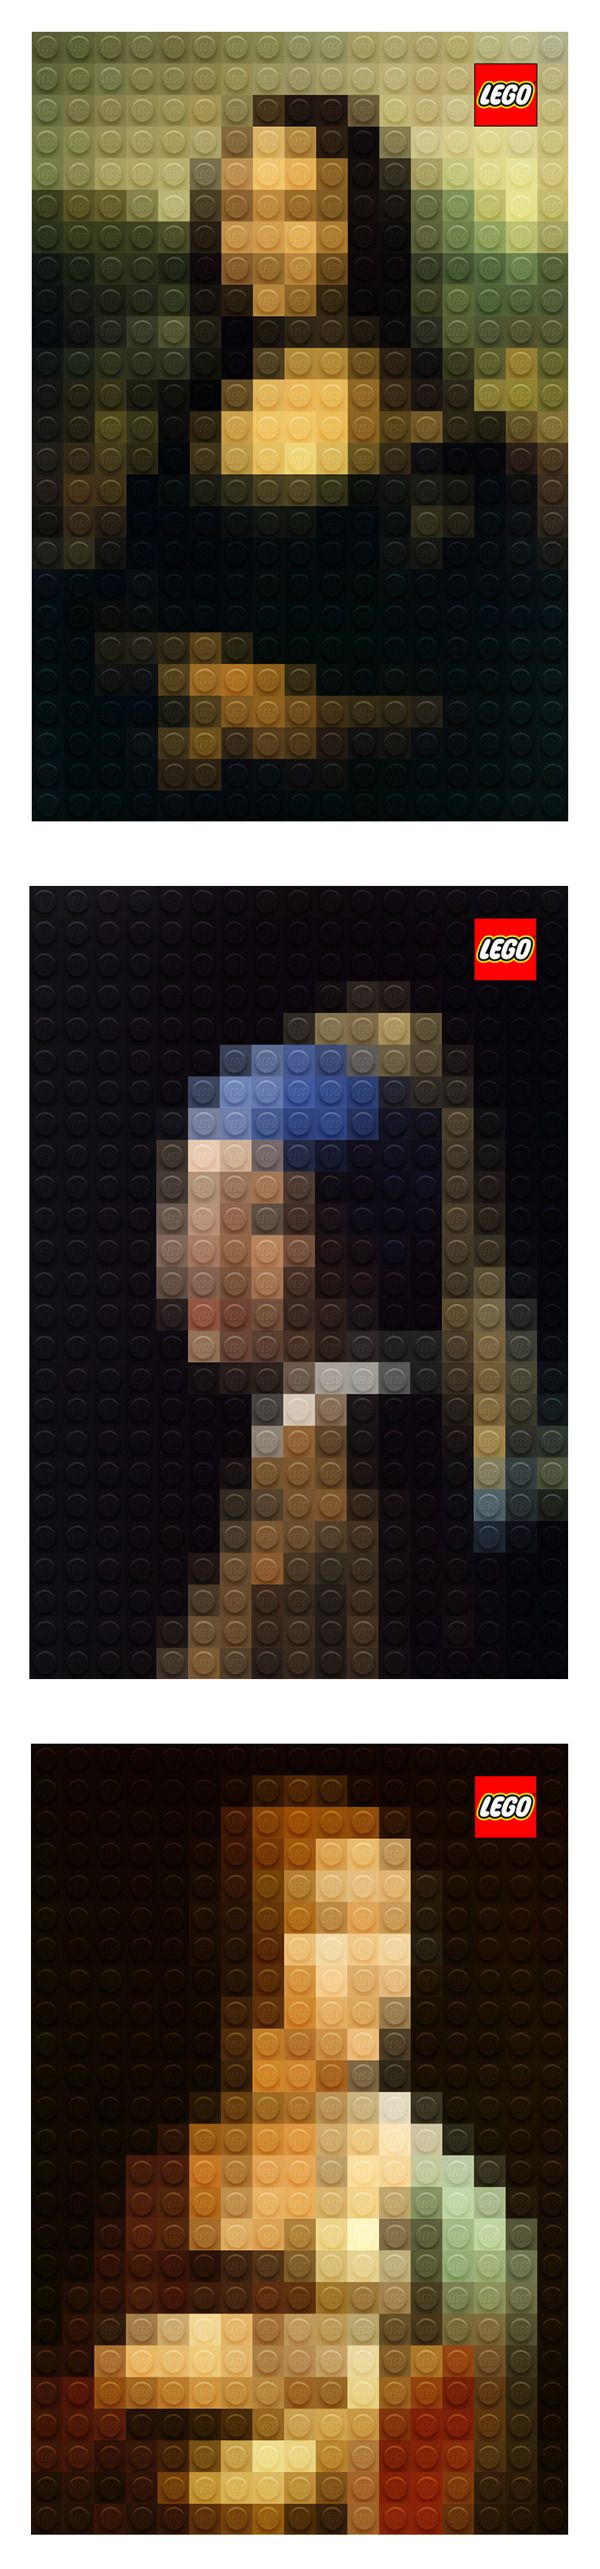 LEGO art by Marco Sodano